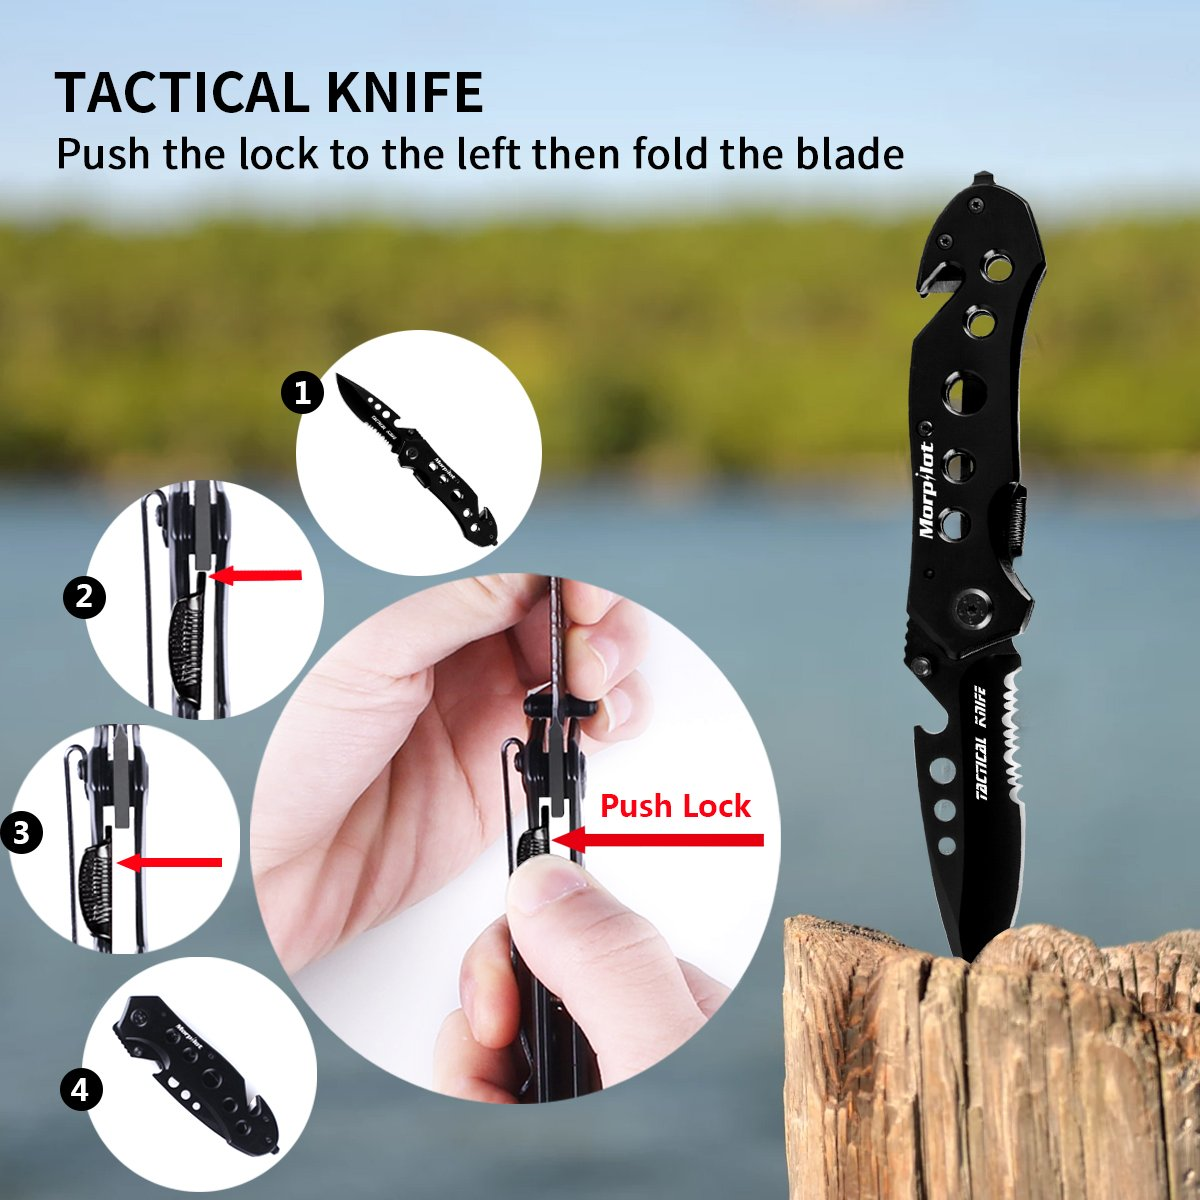 Multitool Knife & Flashlight Set Morpilot 5 in 1 Multi-Purpose Pocket Knife, 500LM 5Modes Portable Handheld Flashlight for Camping Hunting Backpacking Fishing Outdoor Survial,Ideal for gift